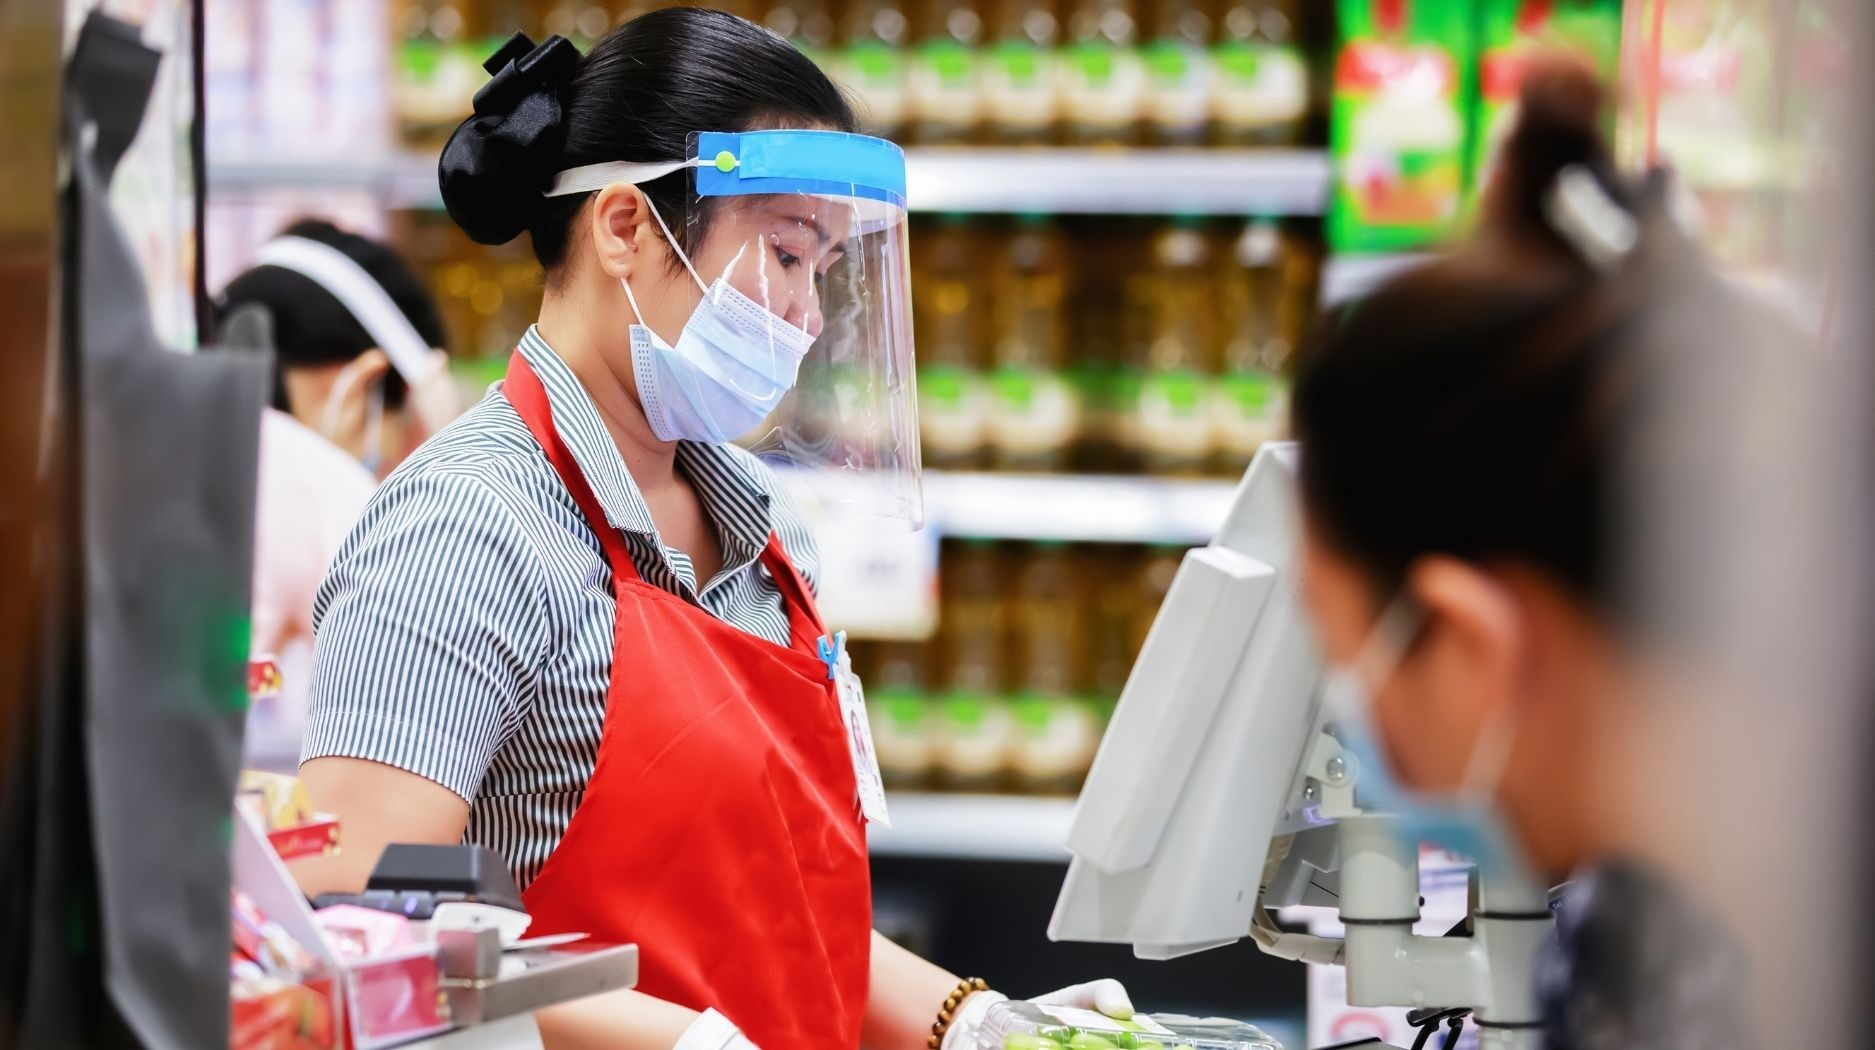 Cashier with face mask and face shield ringing up items